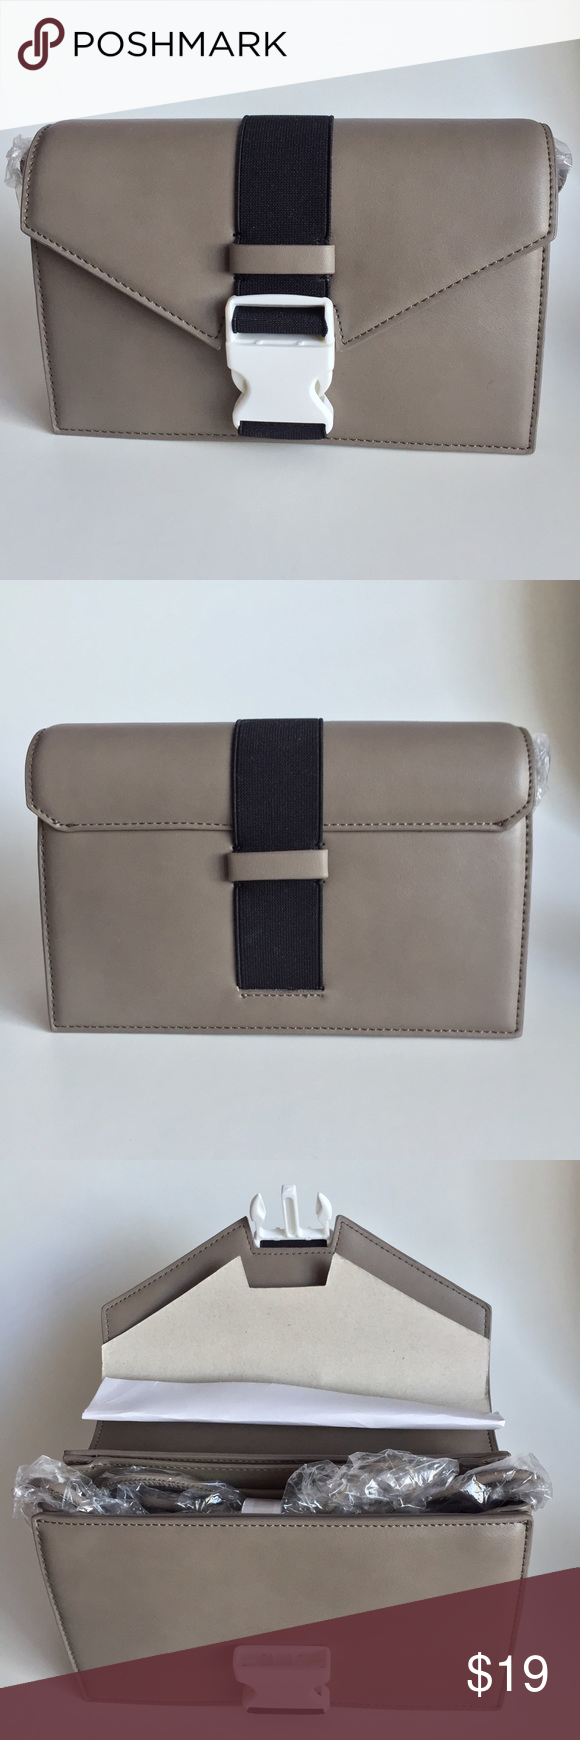 """Gray Purse with Plastic Buckle Detail Company: LAP (Los Angeles Project) Size: Please see measurements MADE IN CHINA/KOREA Fabric: 100% Polyester ••• Width: 9"""" Height: 6 1/4"""" Depth: 2"""" ••• - The purse is completely new but has a small scratch on the back. The purse comes with straps. ••• #clutches #bags #purses #graypurses #cute #fall #backtoschool Bags Mini Bags"""